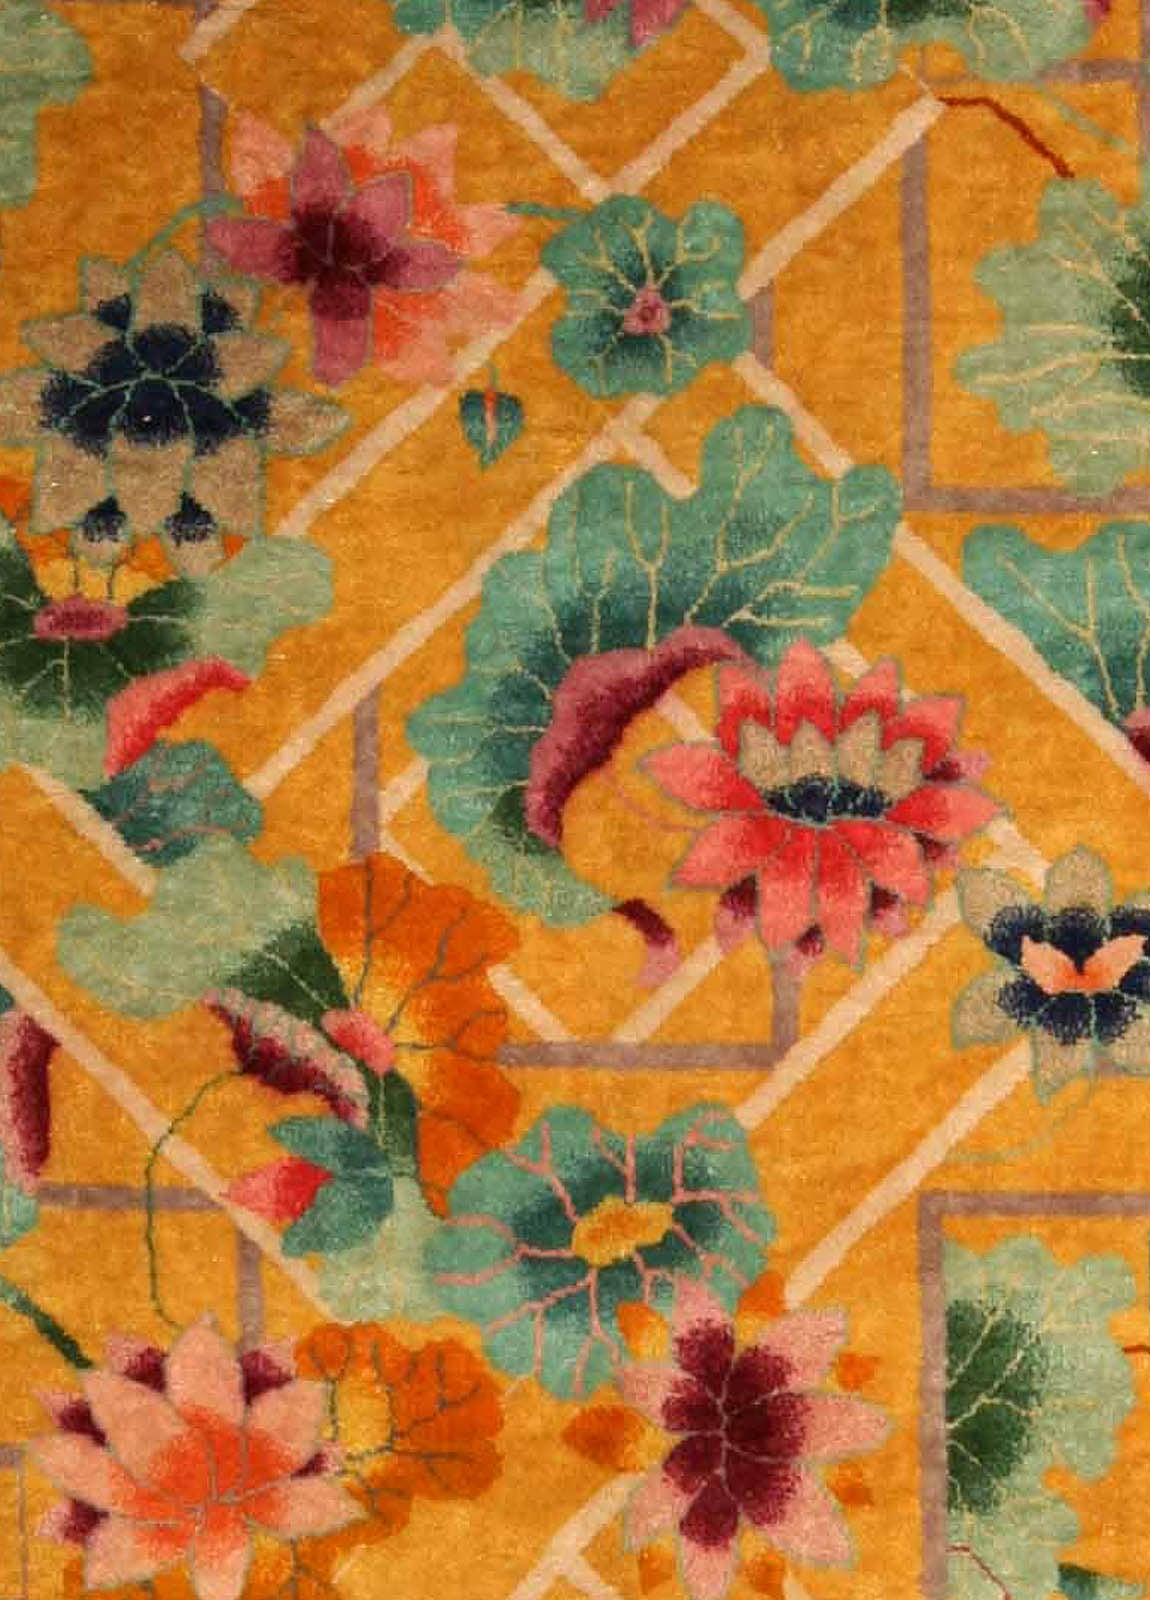 Vintage Chinese Art Deco Rug For Sale at 1stdibs